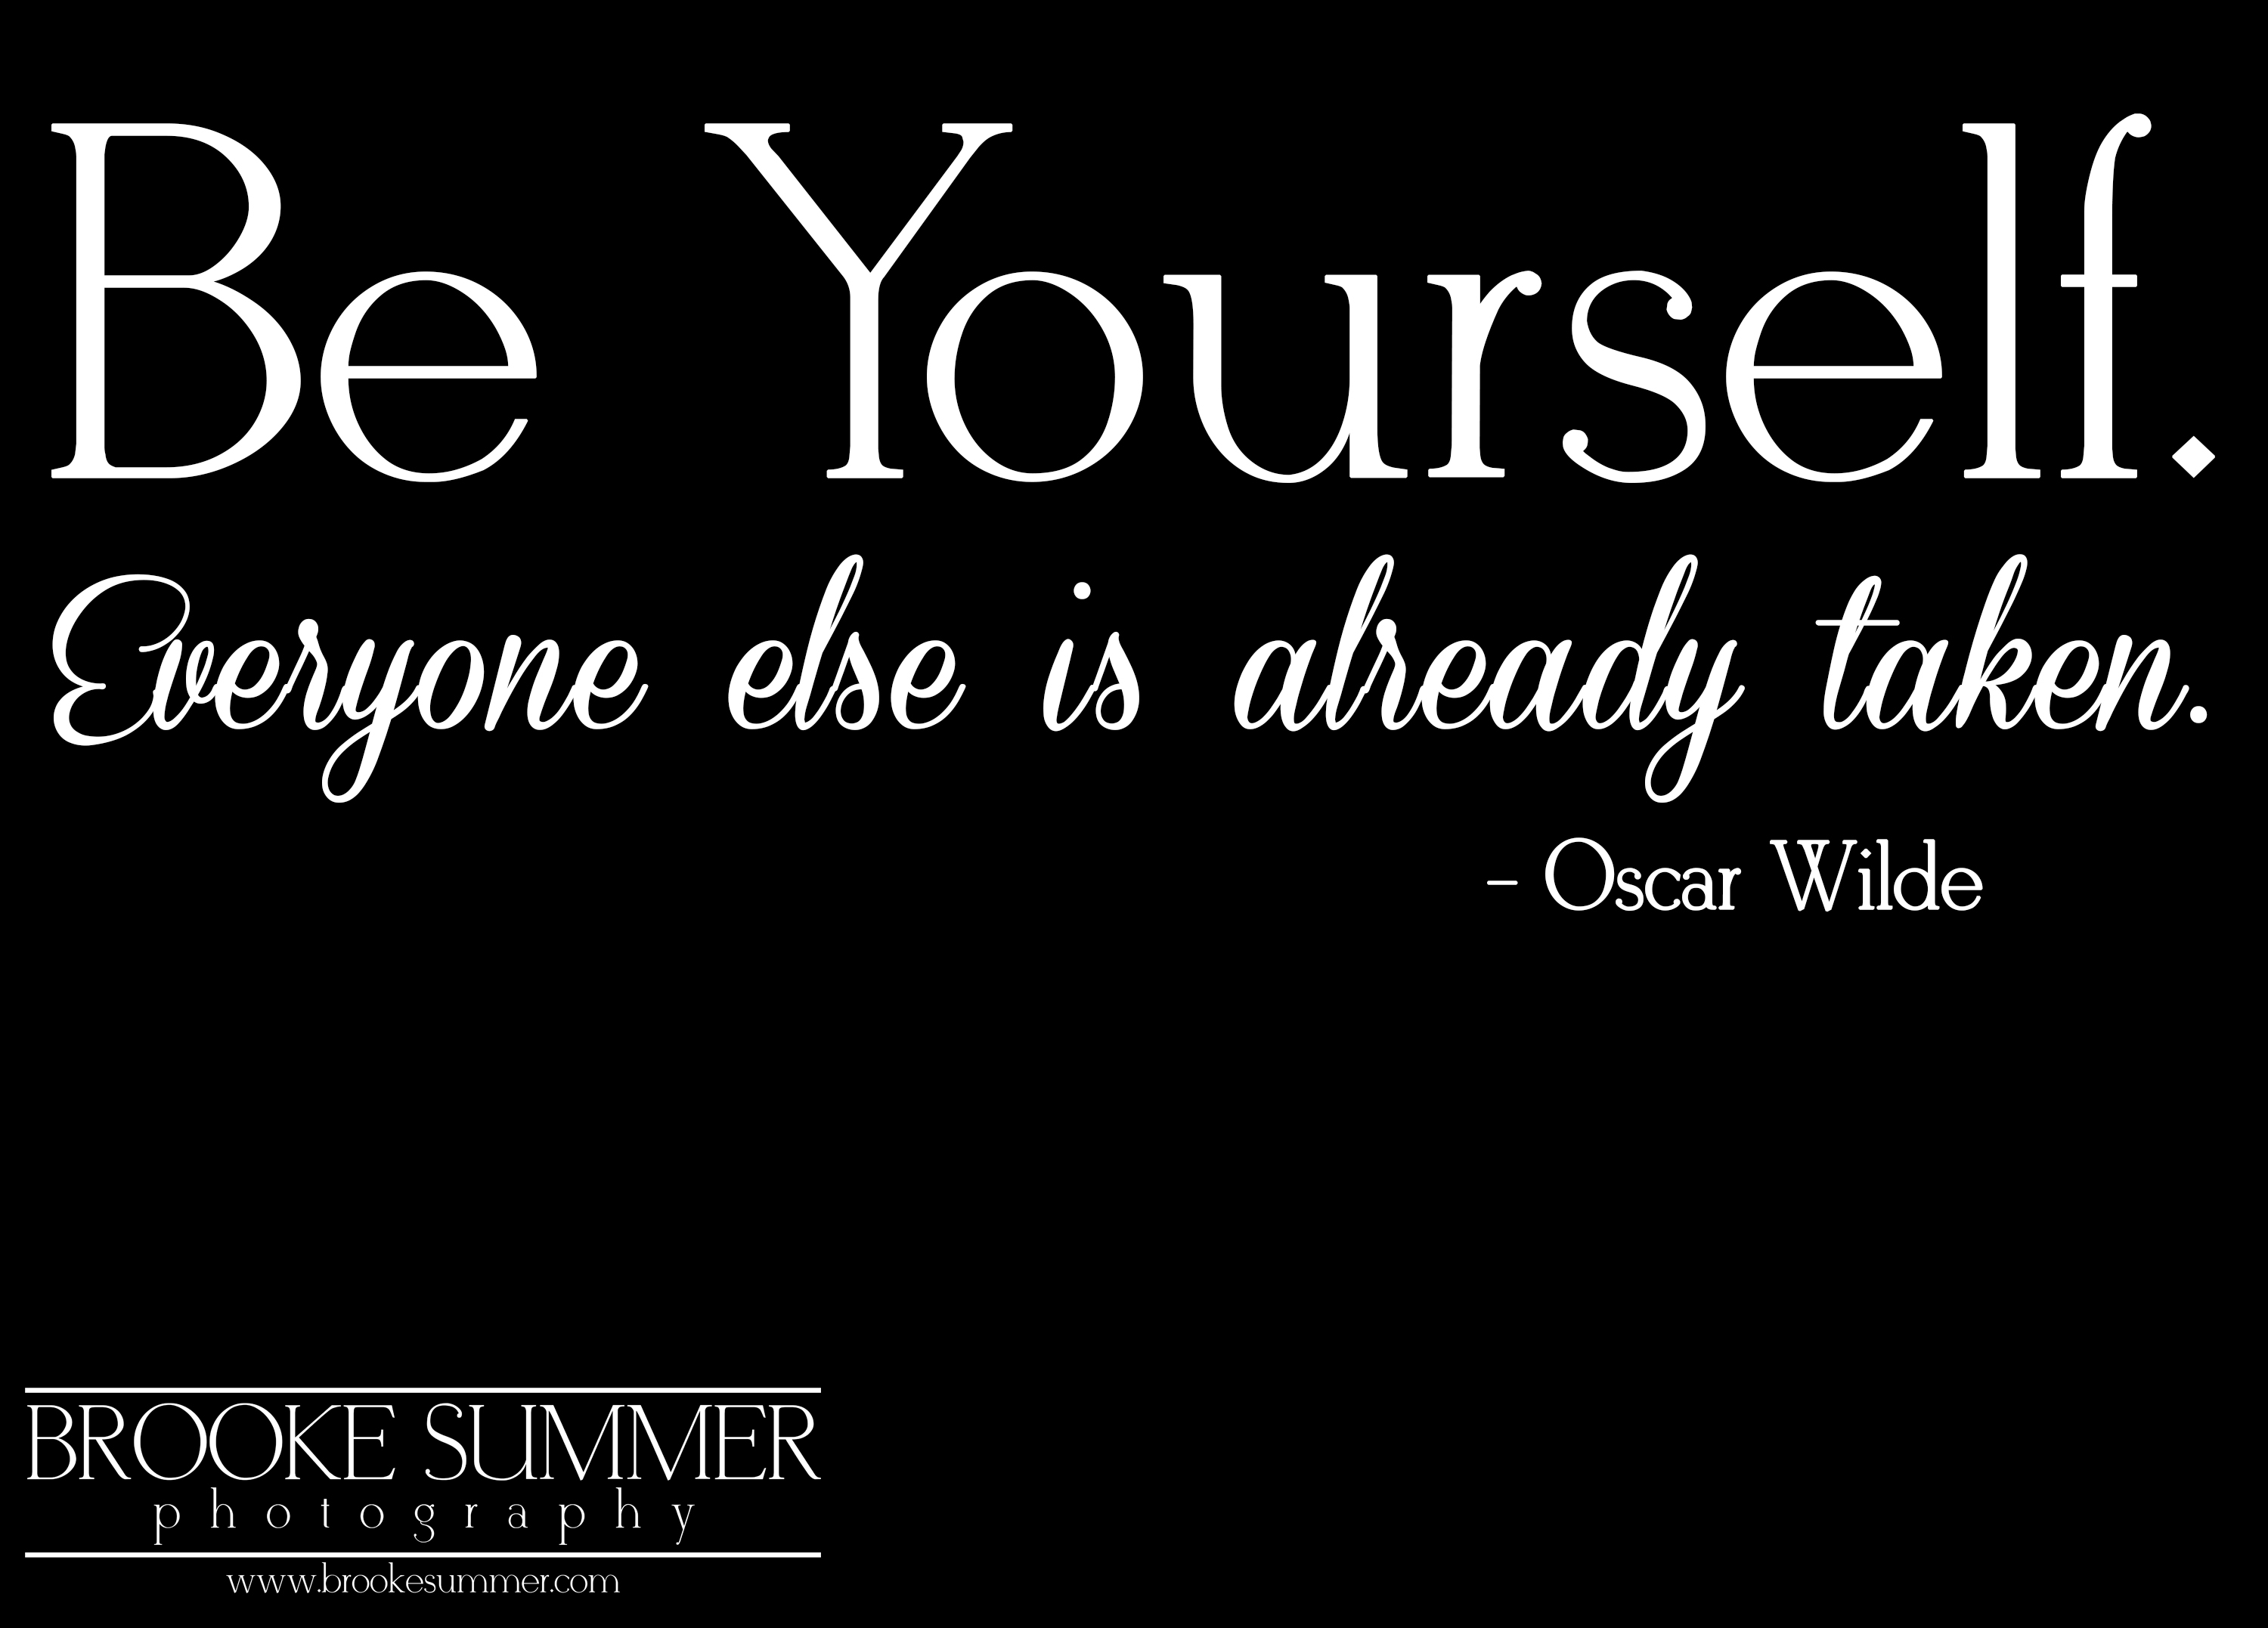 be-yourself-quote, denver-boudoir, boudoir-photography-denver